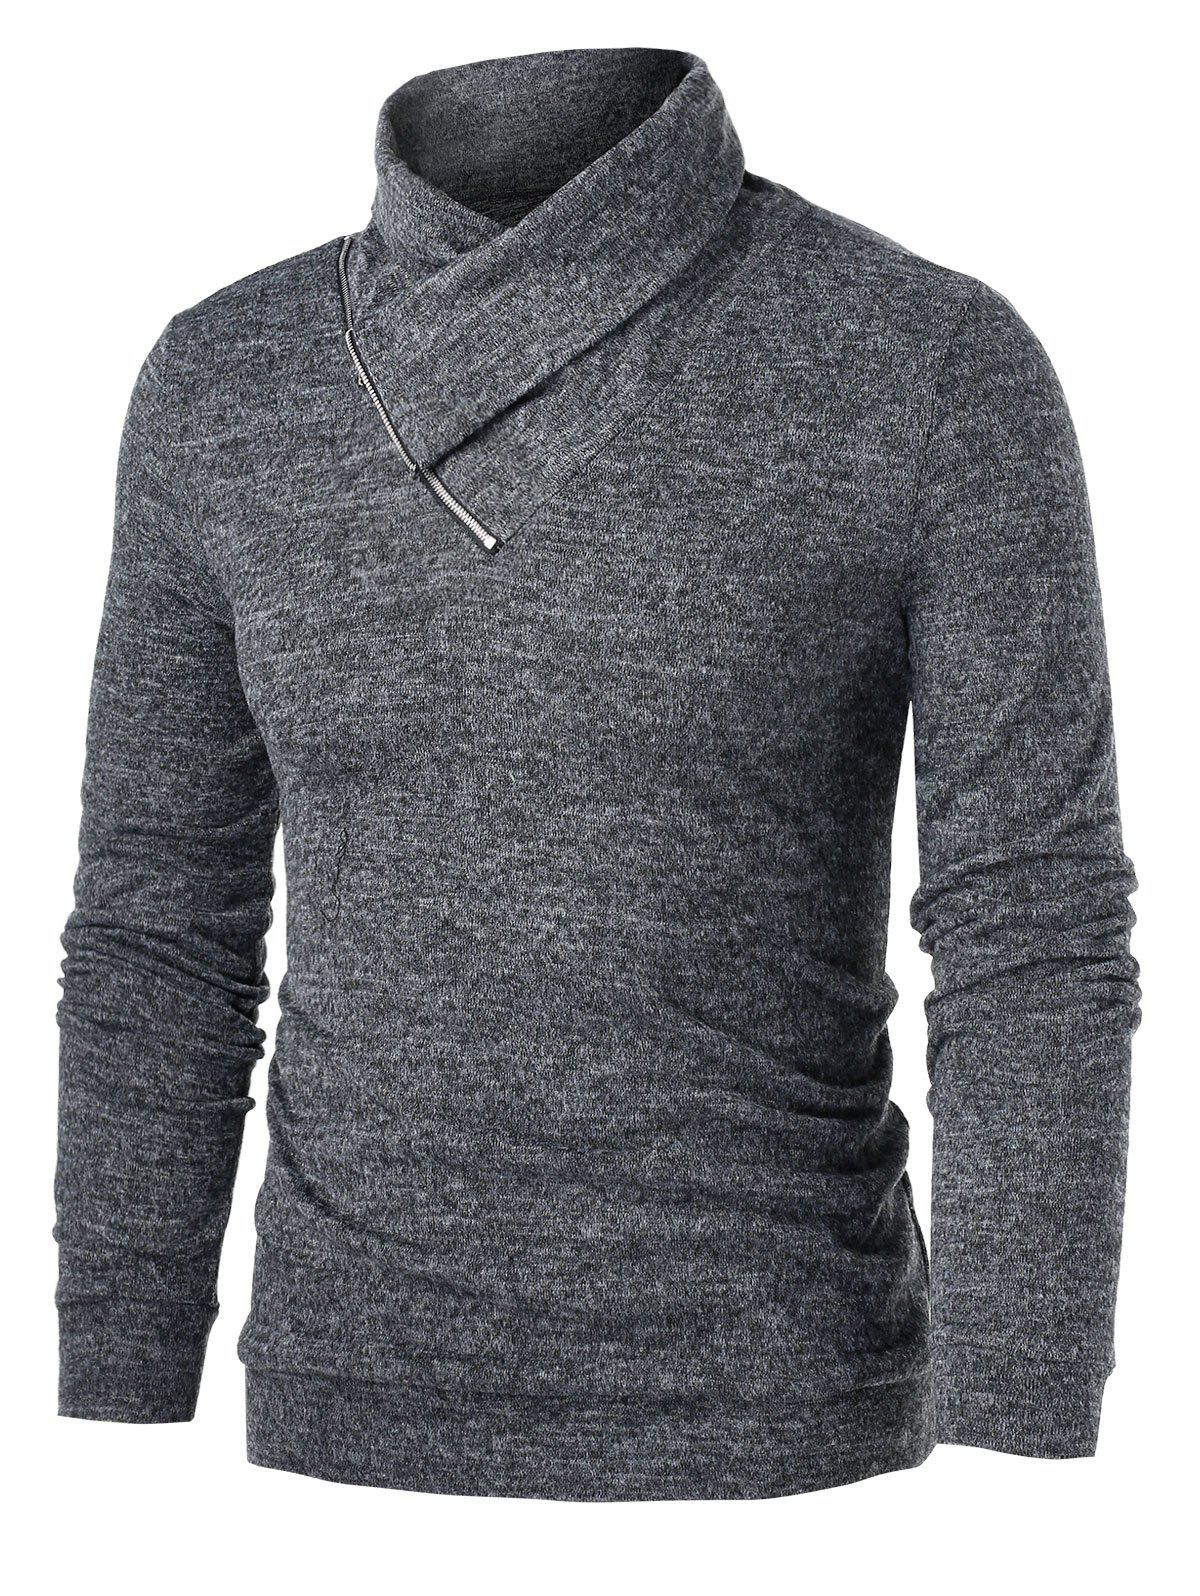 Quarter Zip Heathered Pullover Sweater - CARBON GRAY 3XL